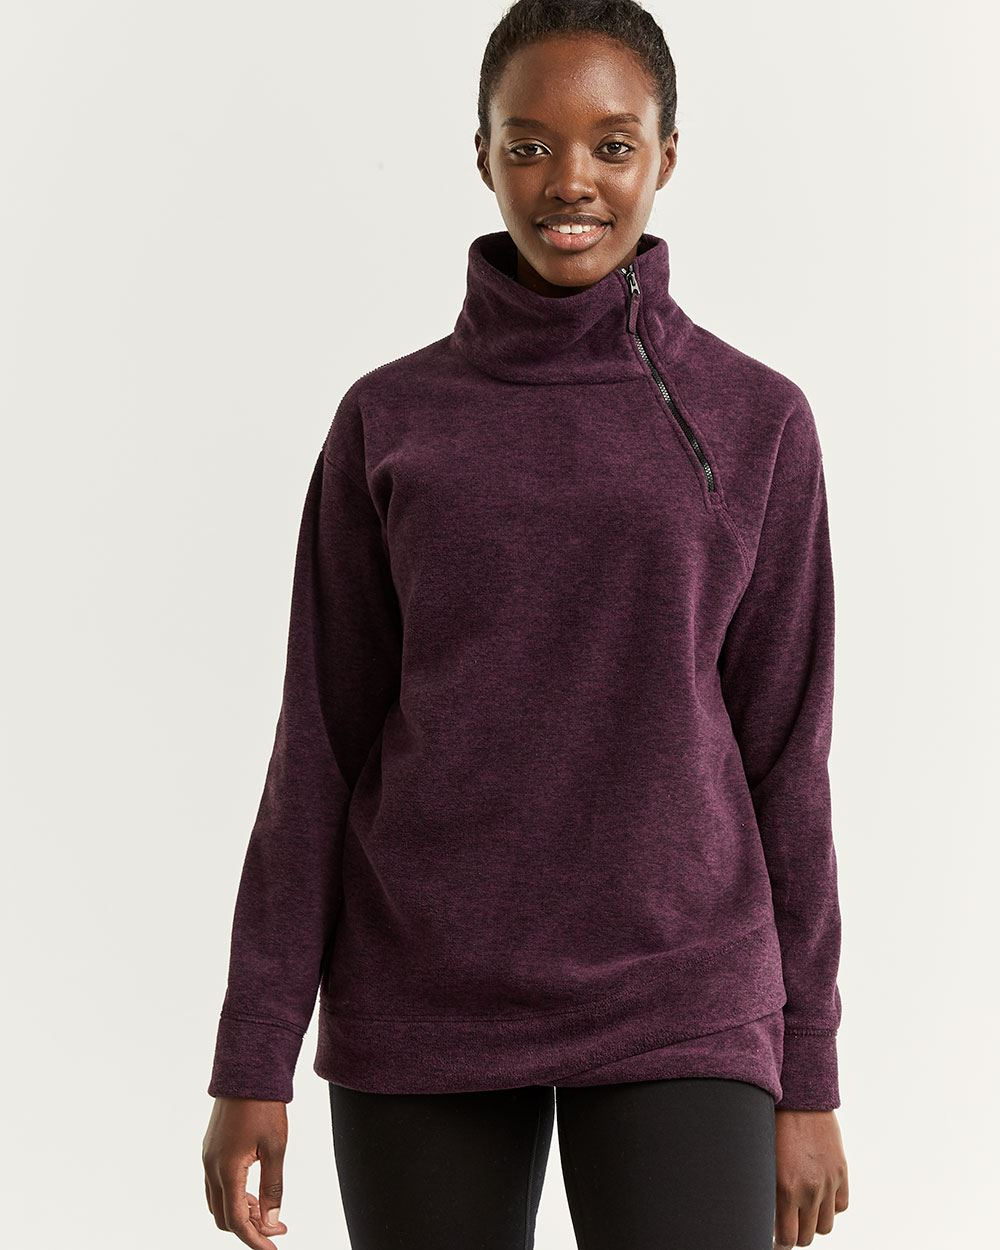 Hyba Thermal Fleece Mock Neck Sweater